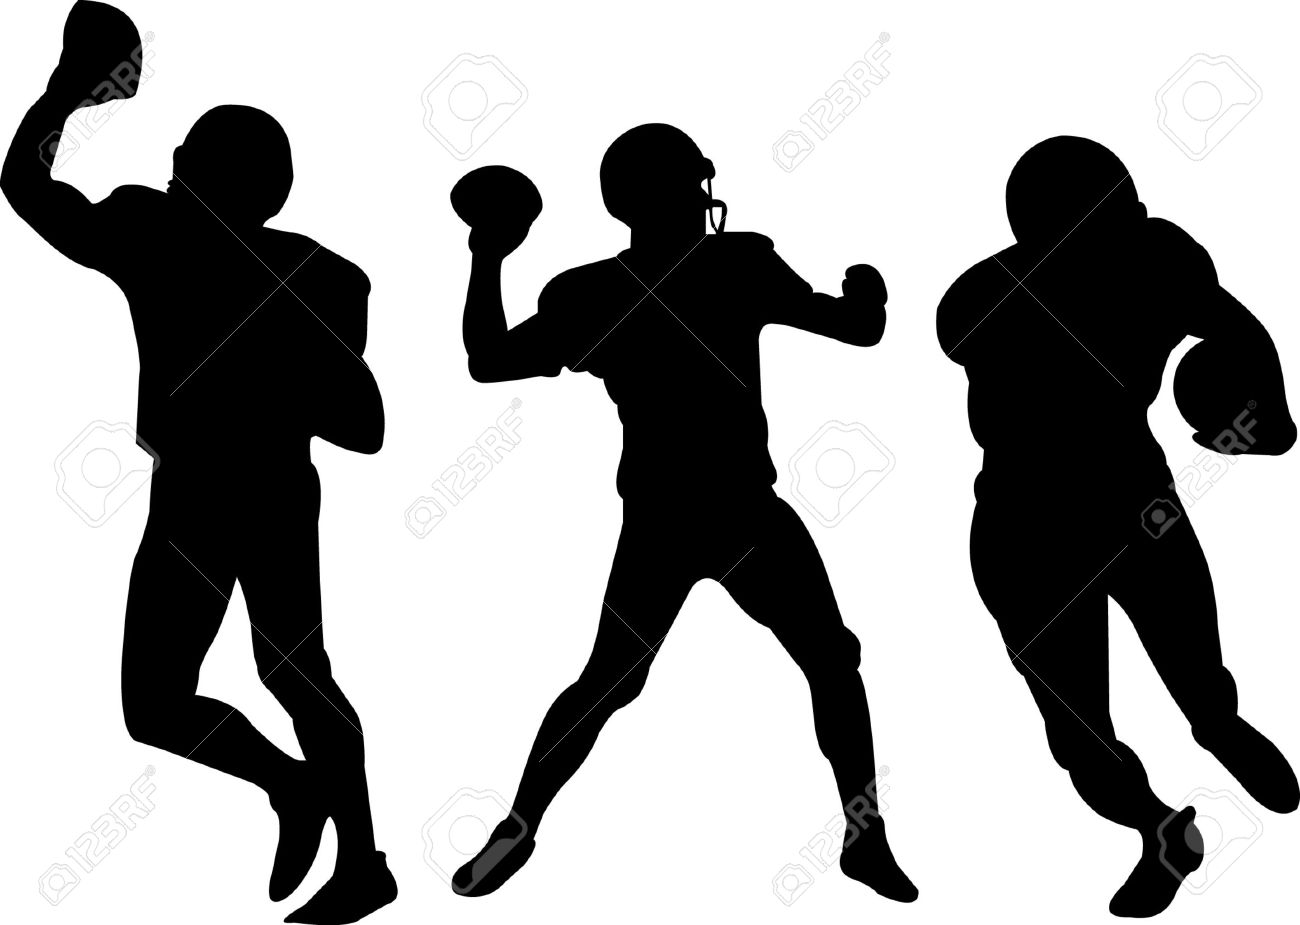 american football players silhouettes - 22815719